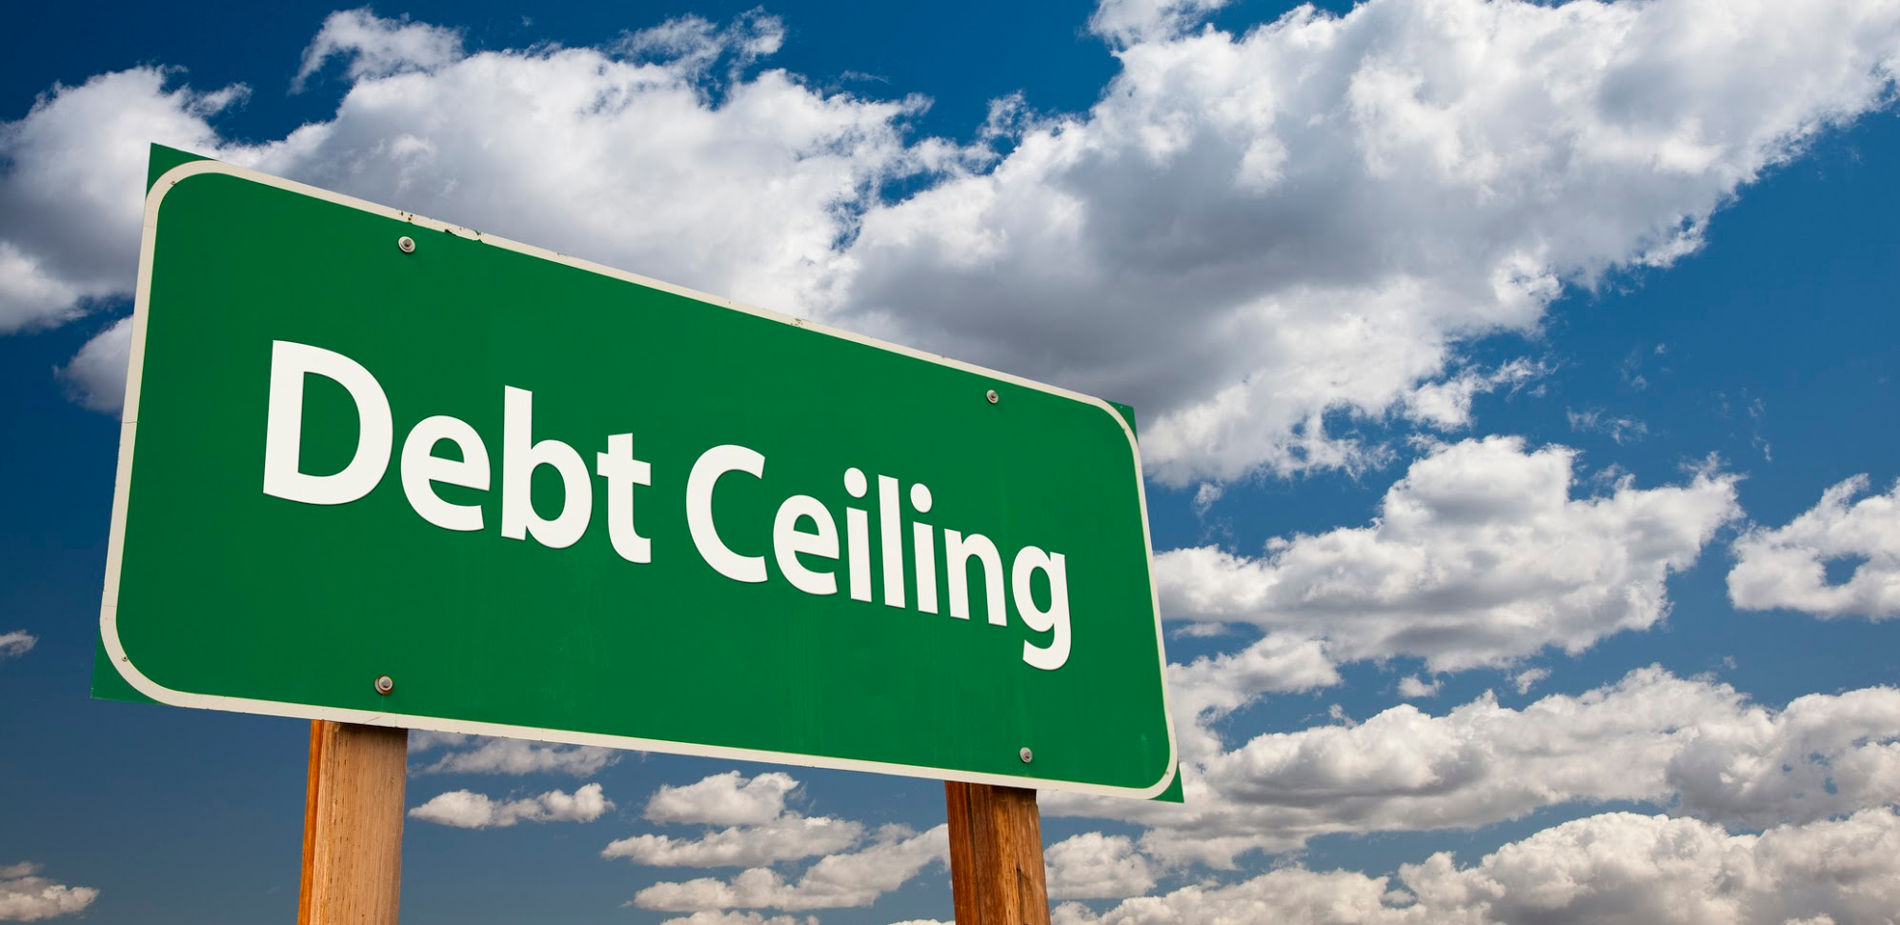 american debt ceiling crisis Financial markets and american businesses and families the closest historical precedent is the debt ceiling  likely reflects the sovereign debt crisis in.